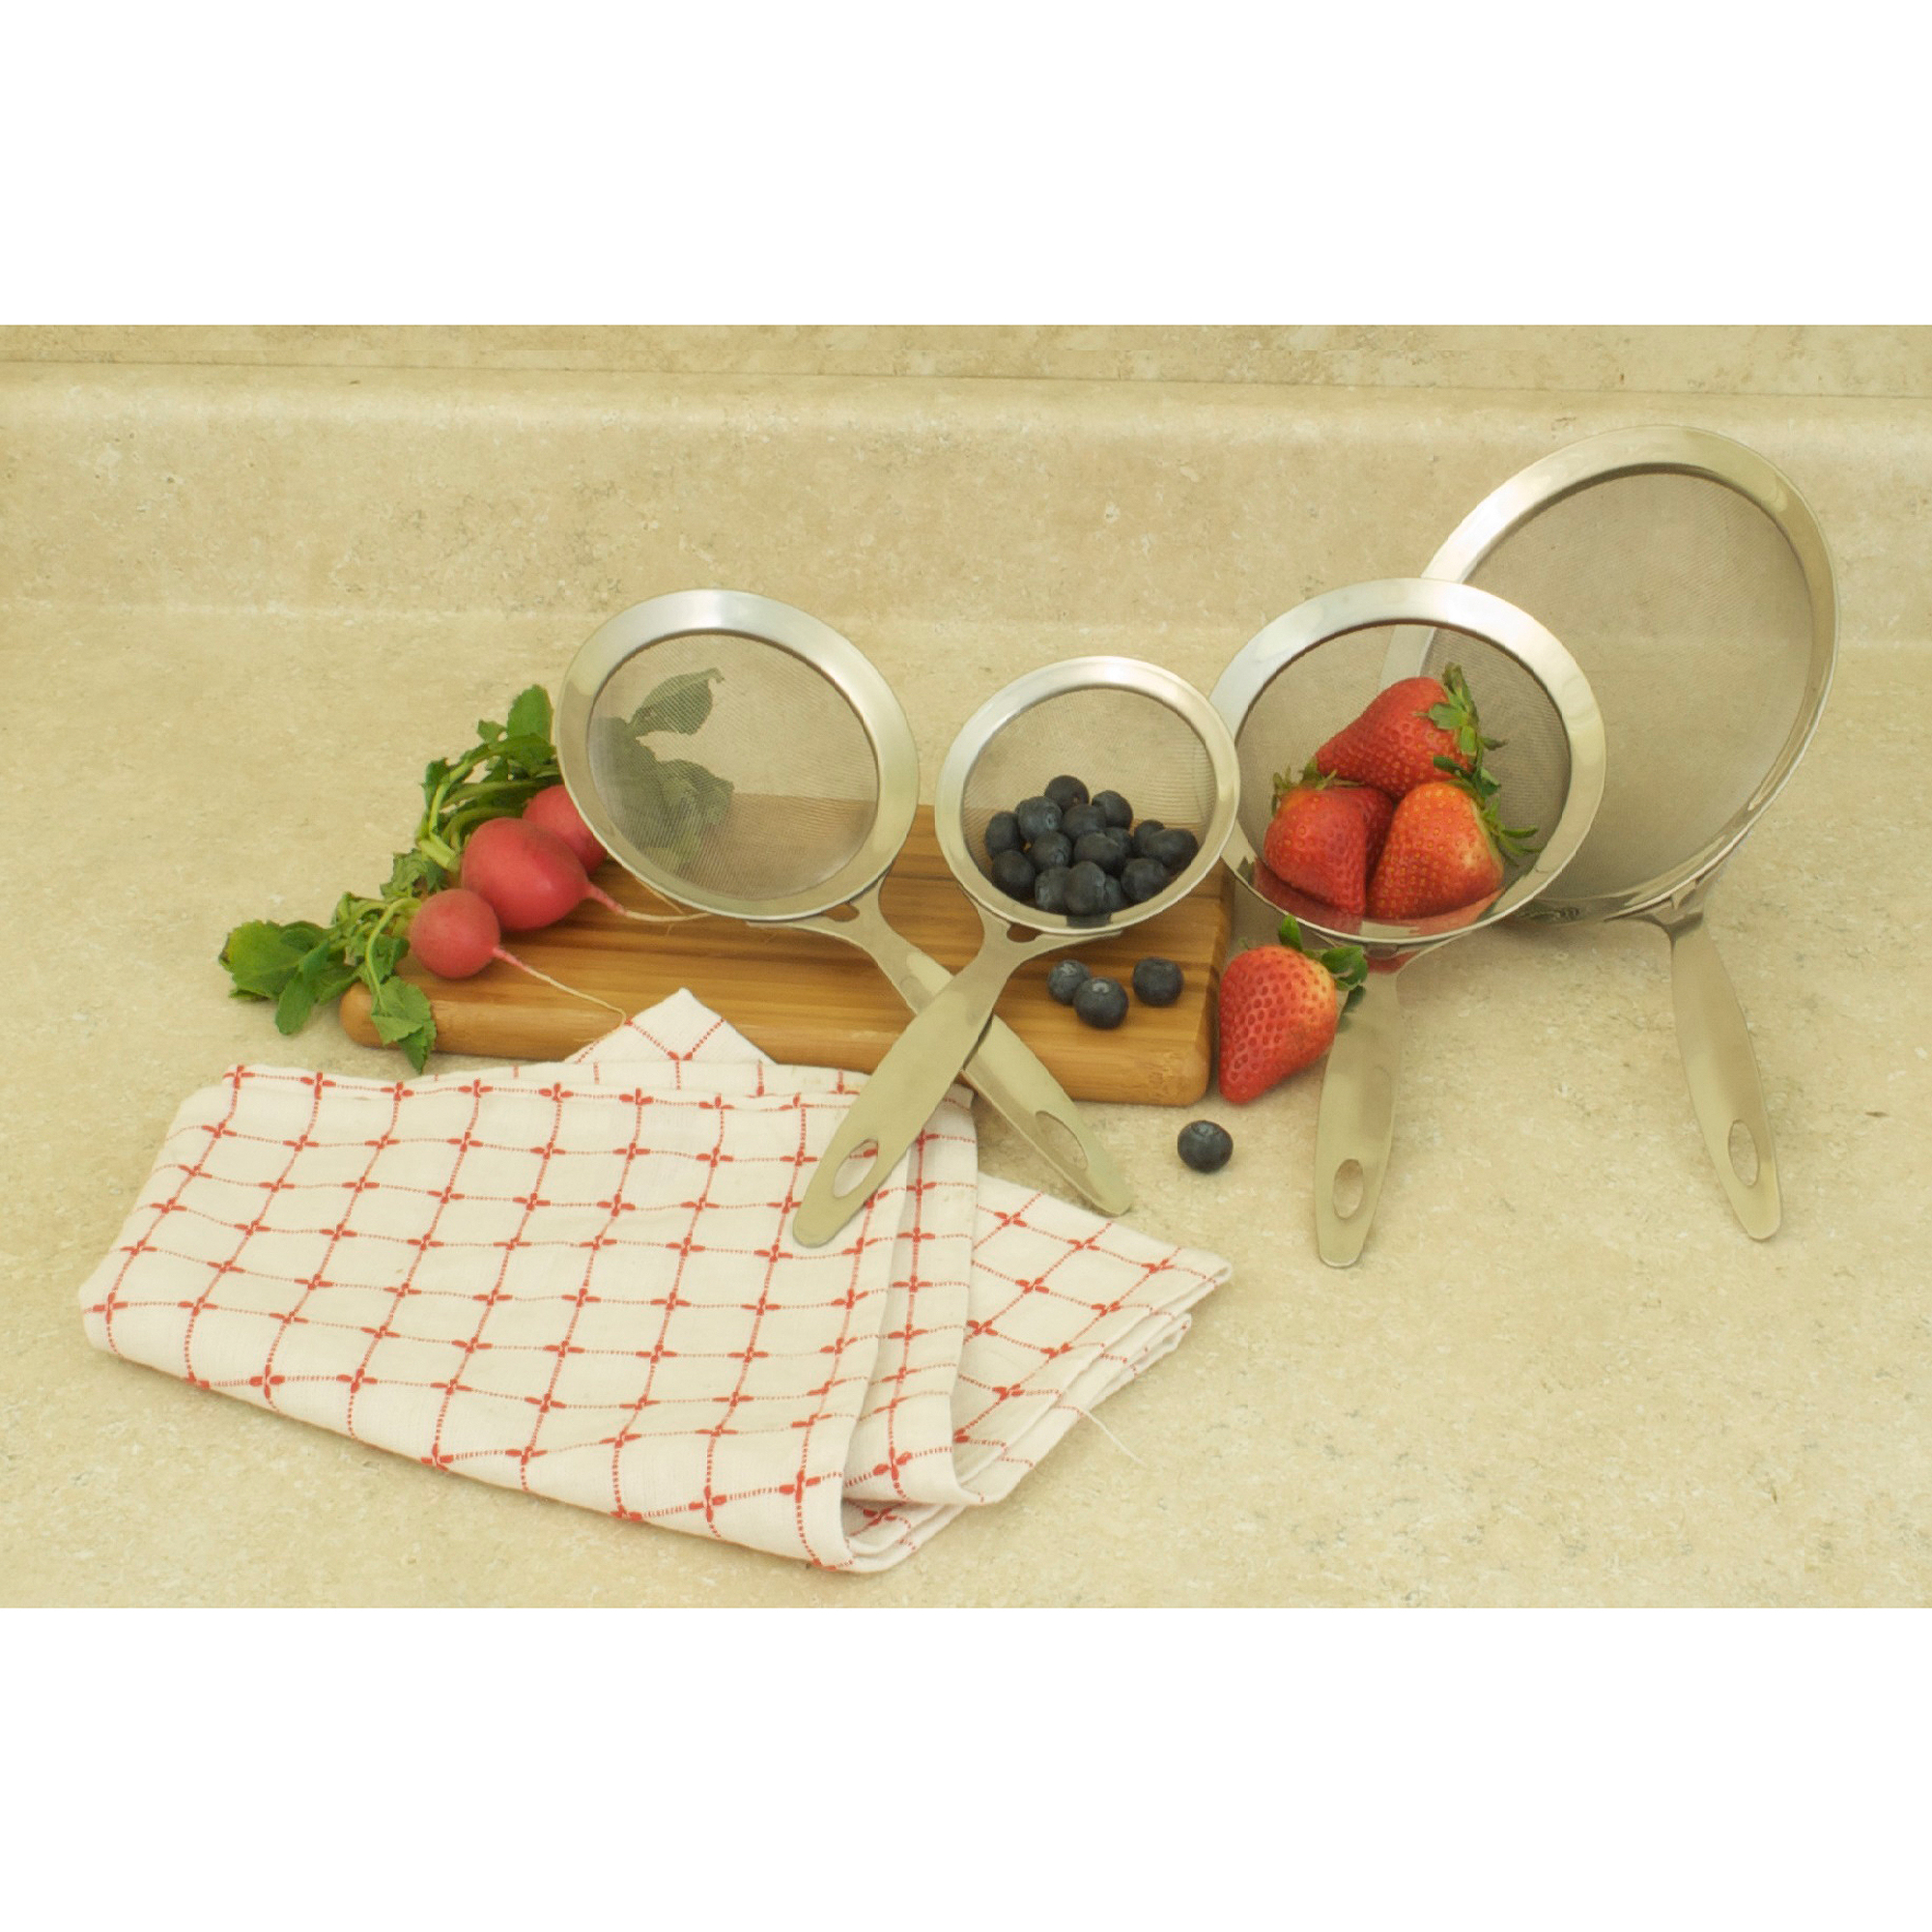 Cook Pro 4pc Heavy Duty Stainless Steel Strainers by Cook Pro